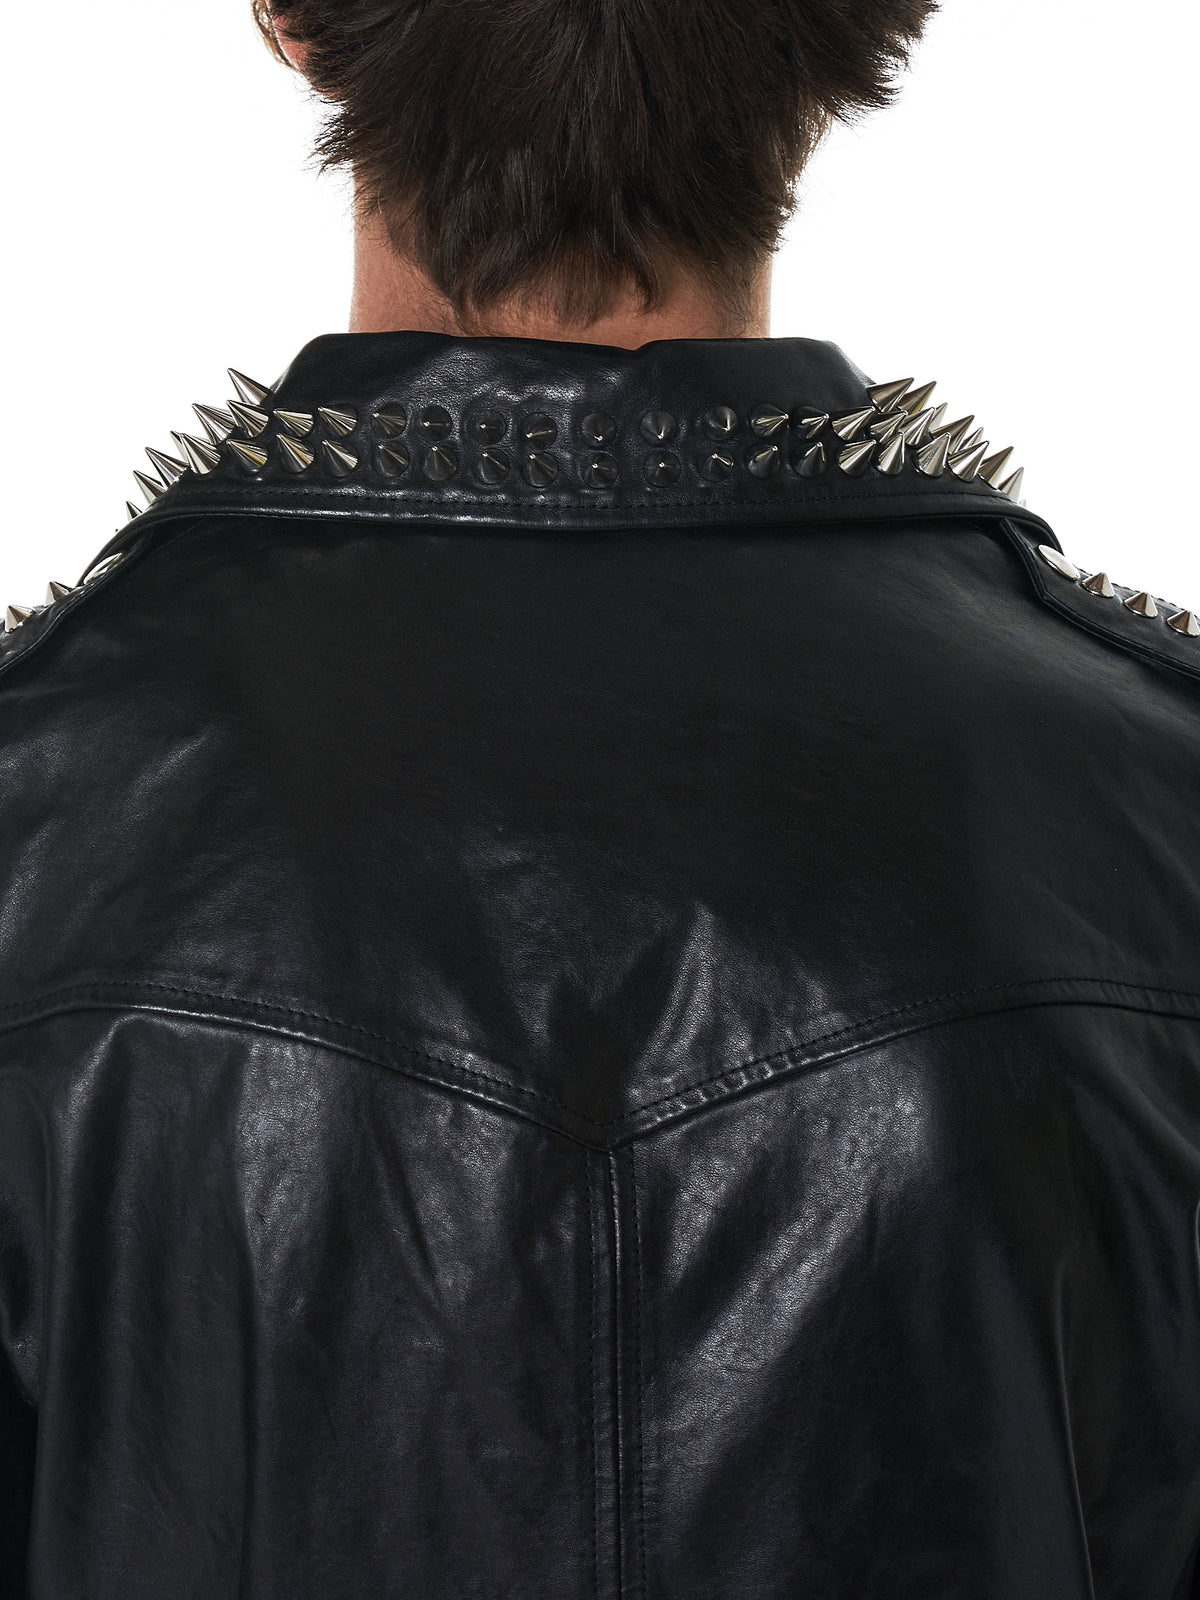 MJB (Marc Jacques Burton) Leather Jacket - Hlorenzo Detail 2